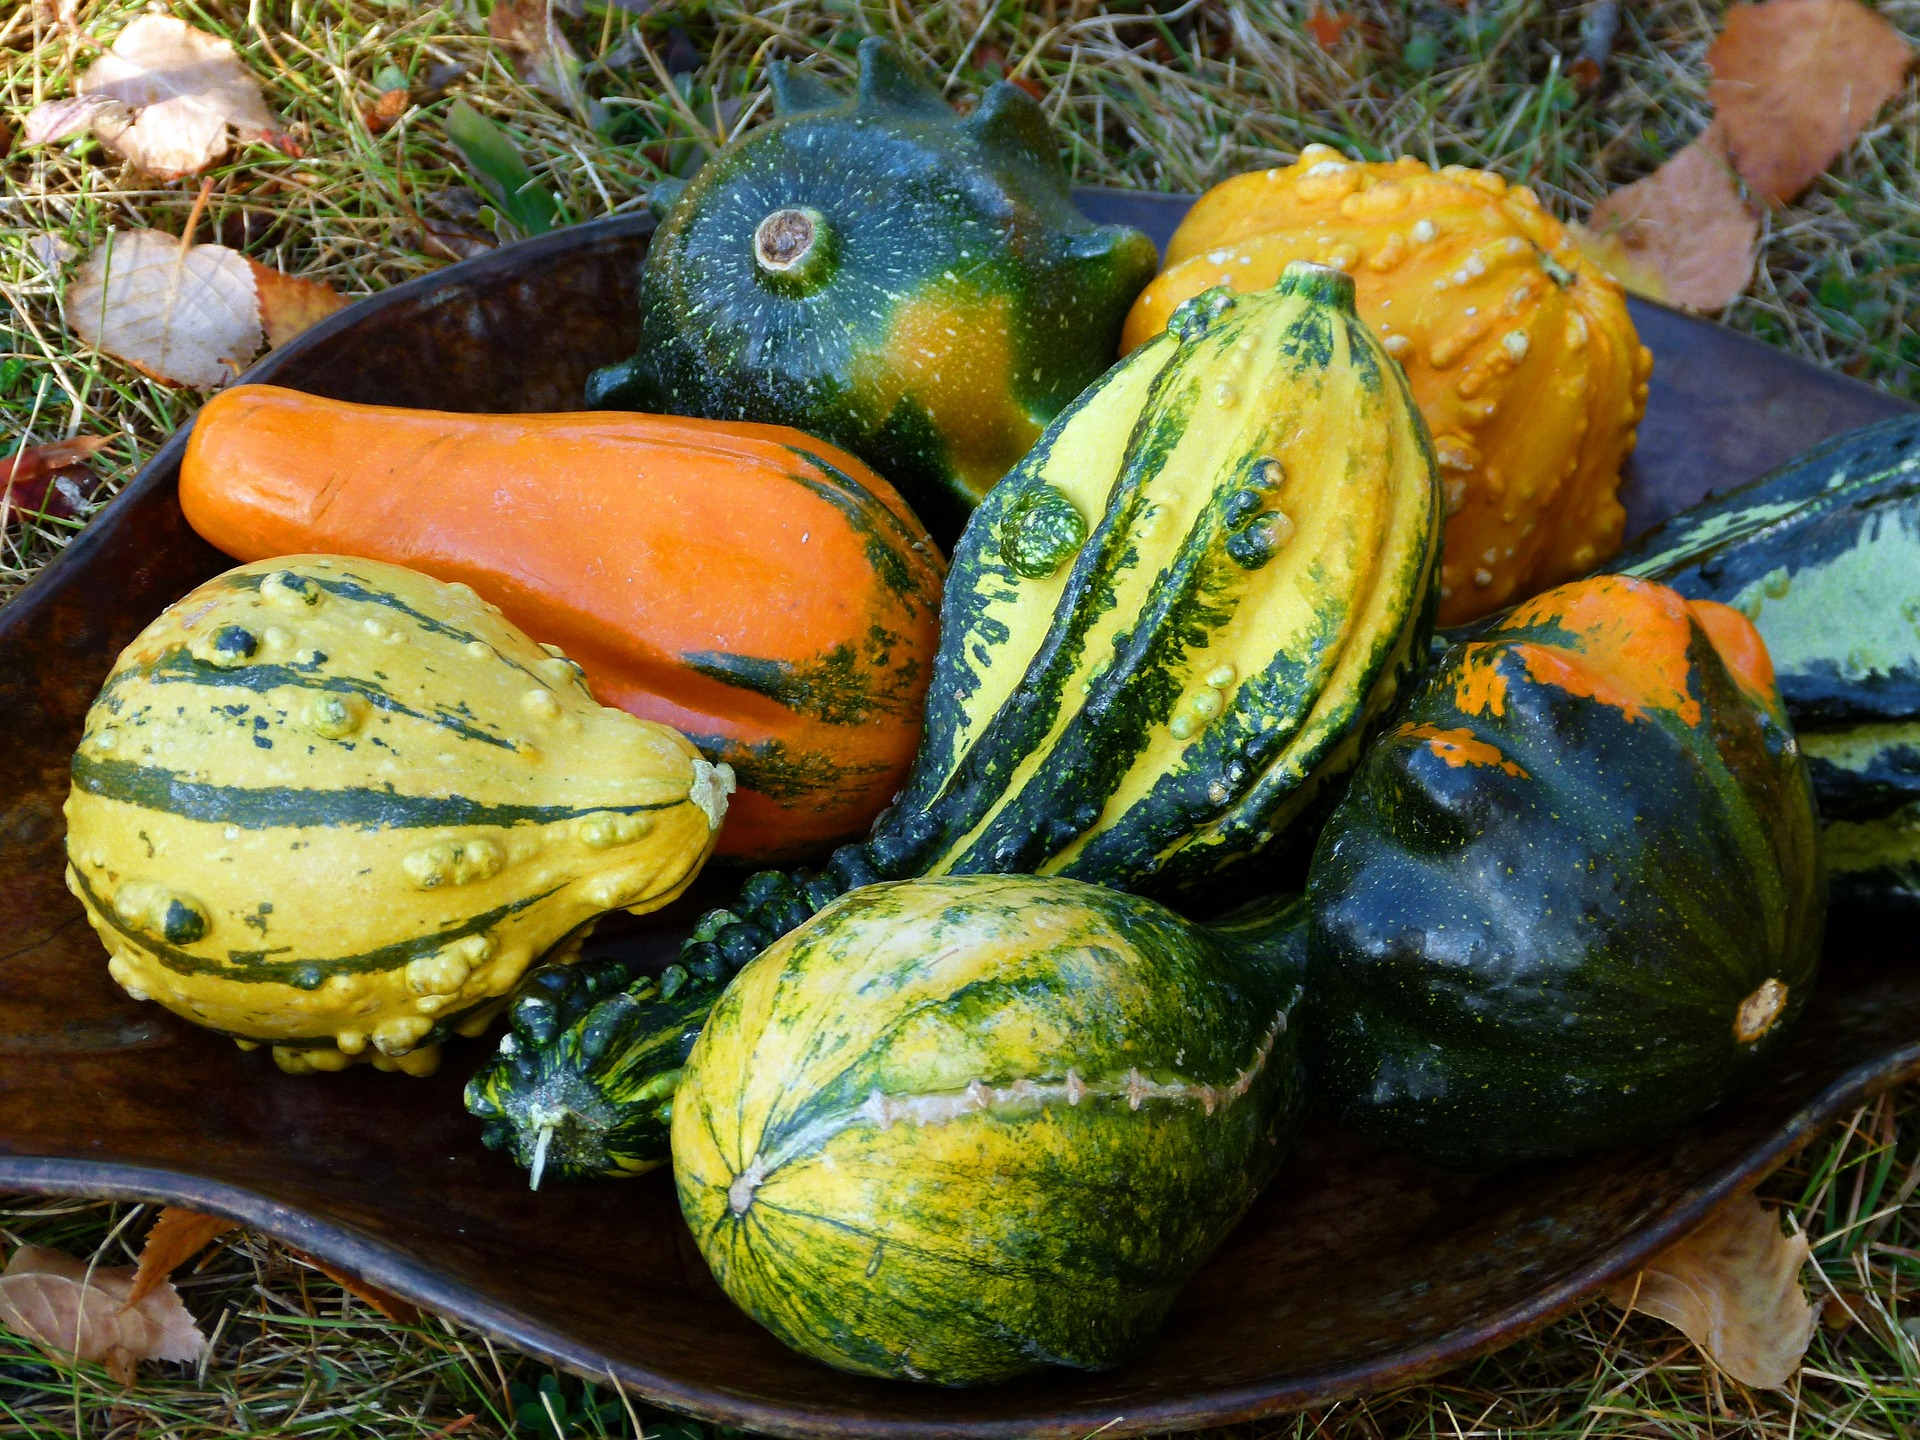 Food handler classes the amazing squash online training service offers a family of online courseware to meet your certification training needs if you are looking for an online food handler xflitez Gallery